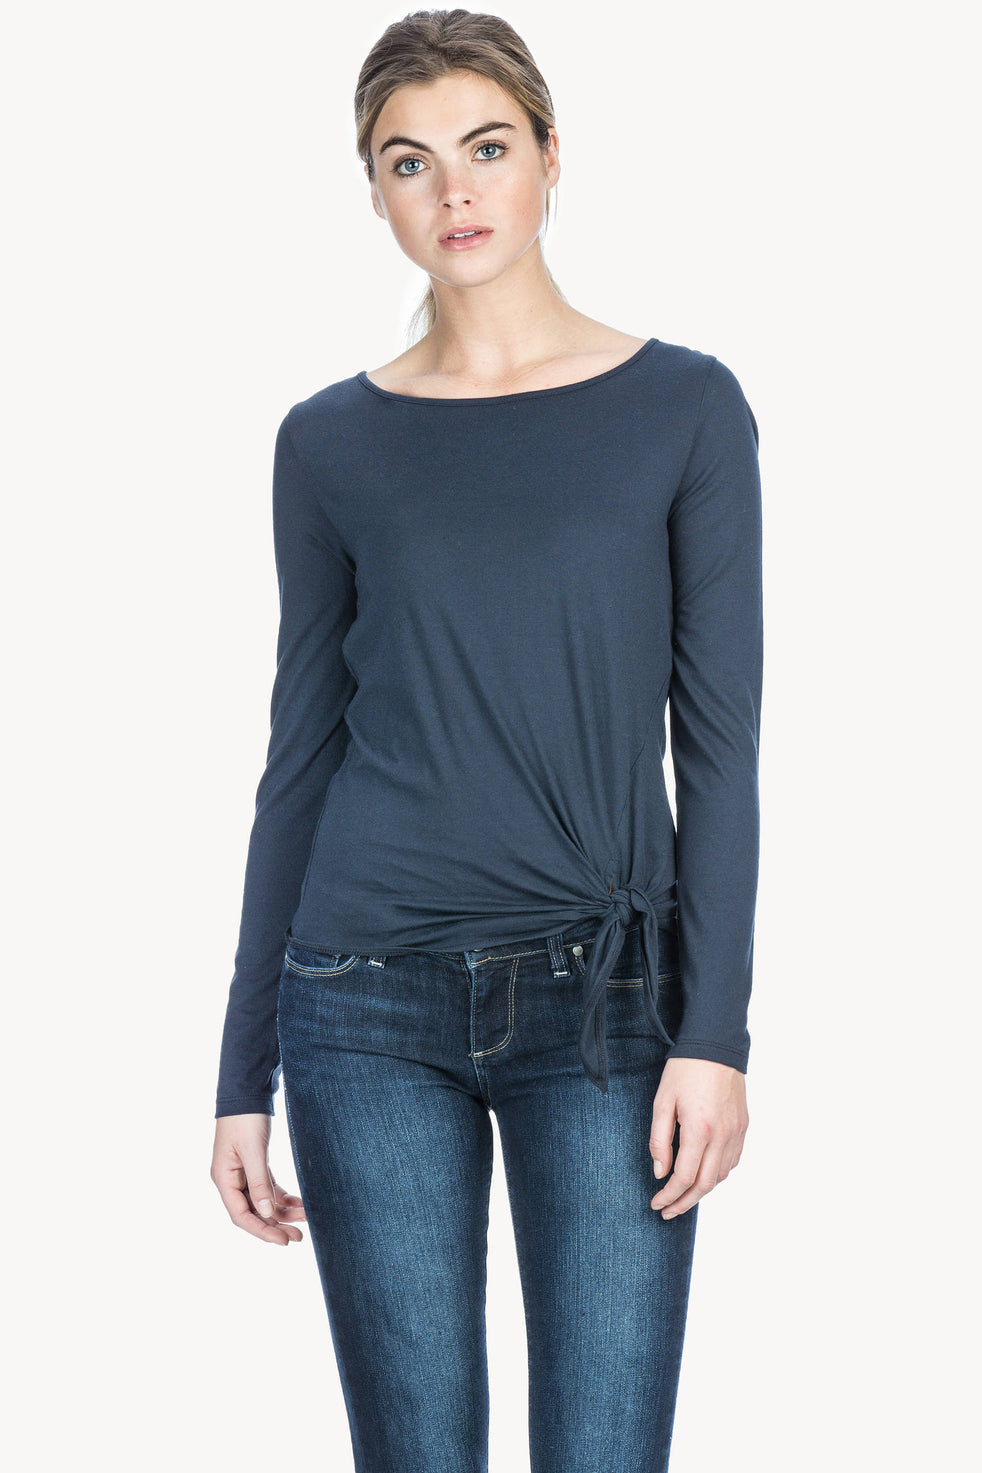 d89076dbc20 Long Sleeve Tie Front Womens Top Dusk A1 ...